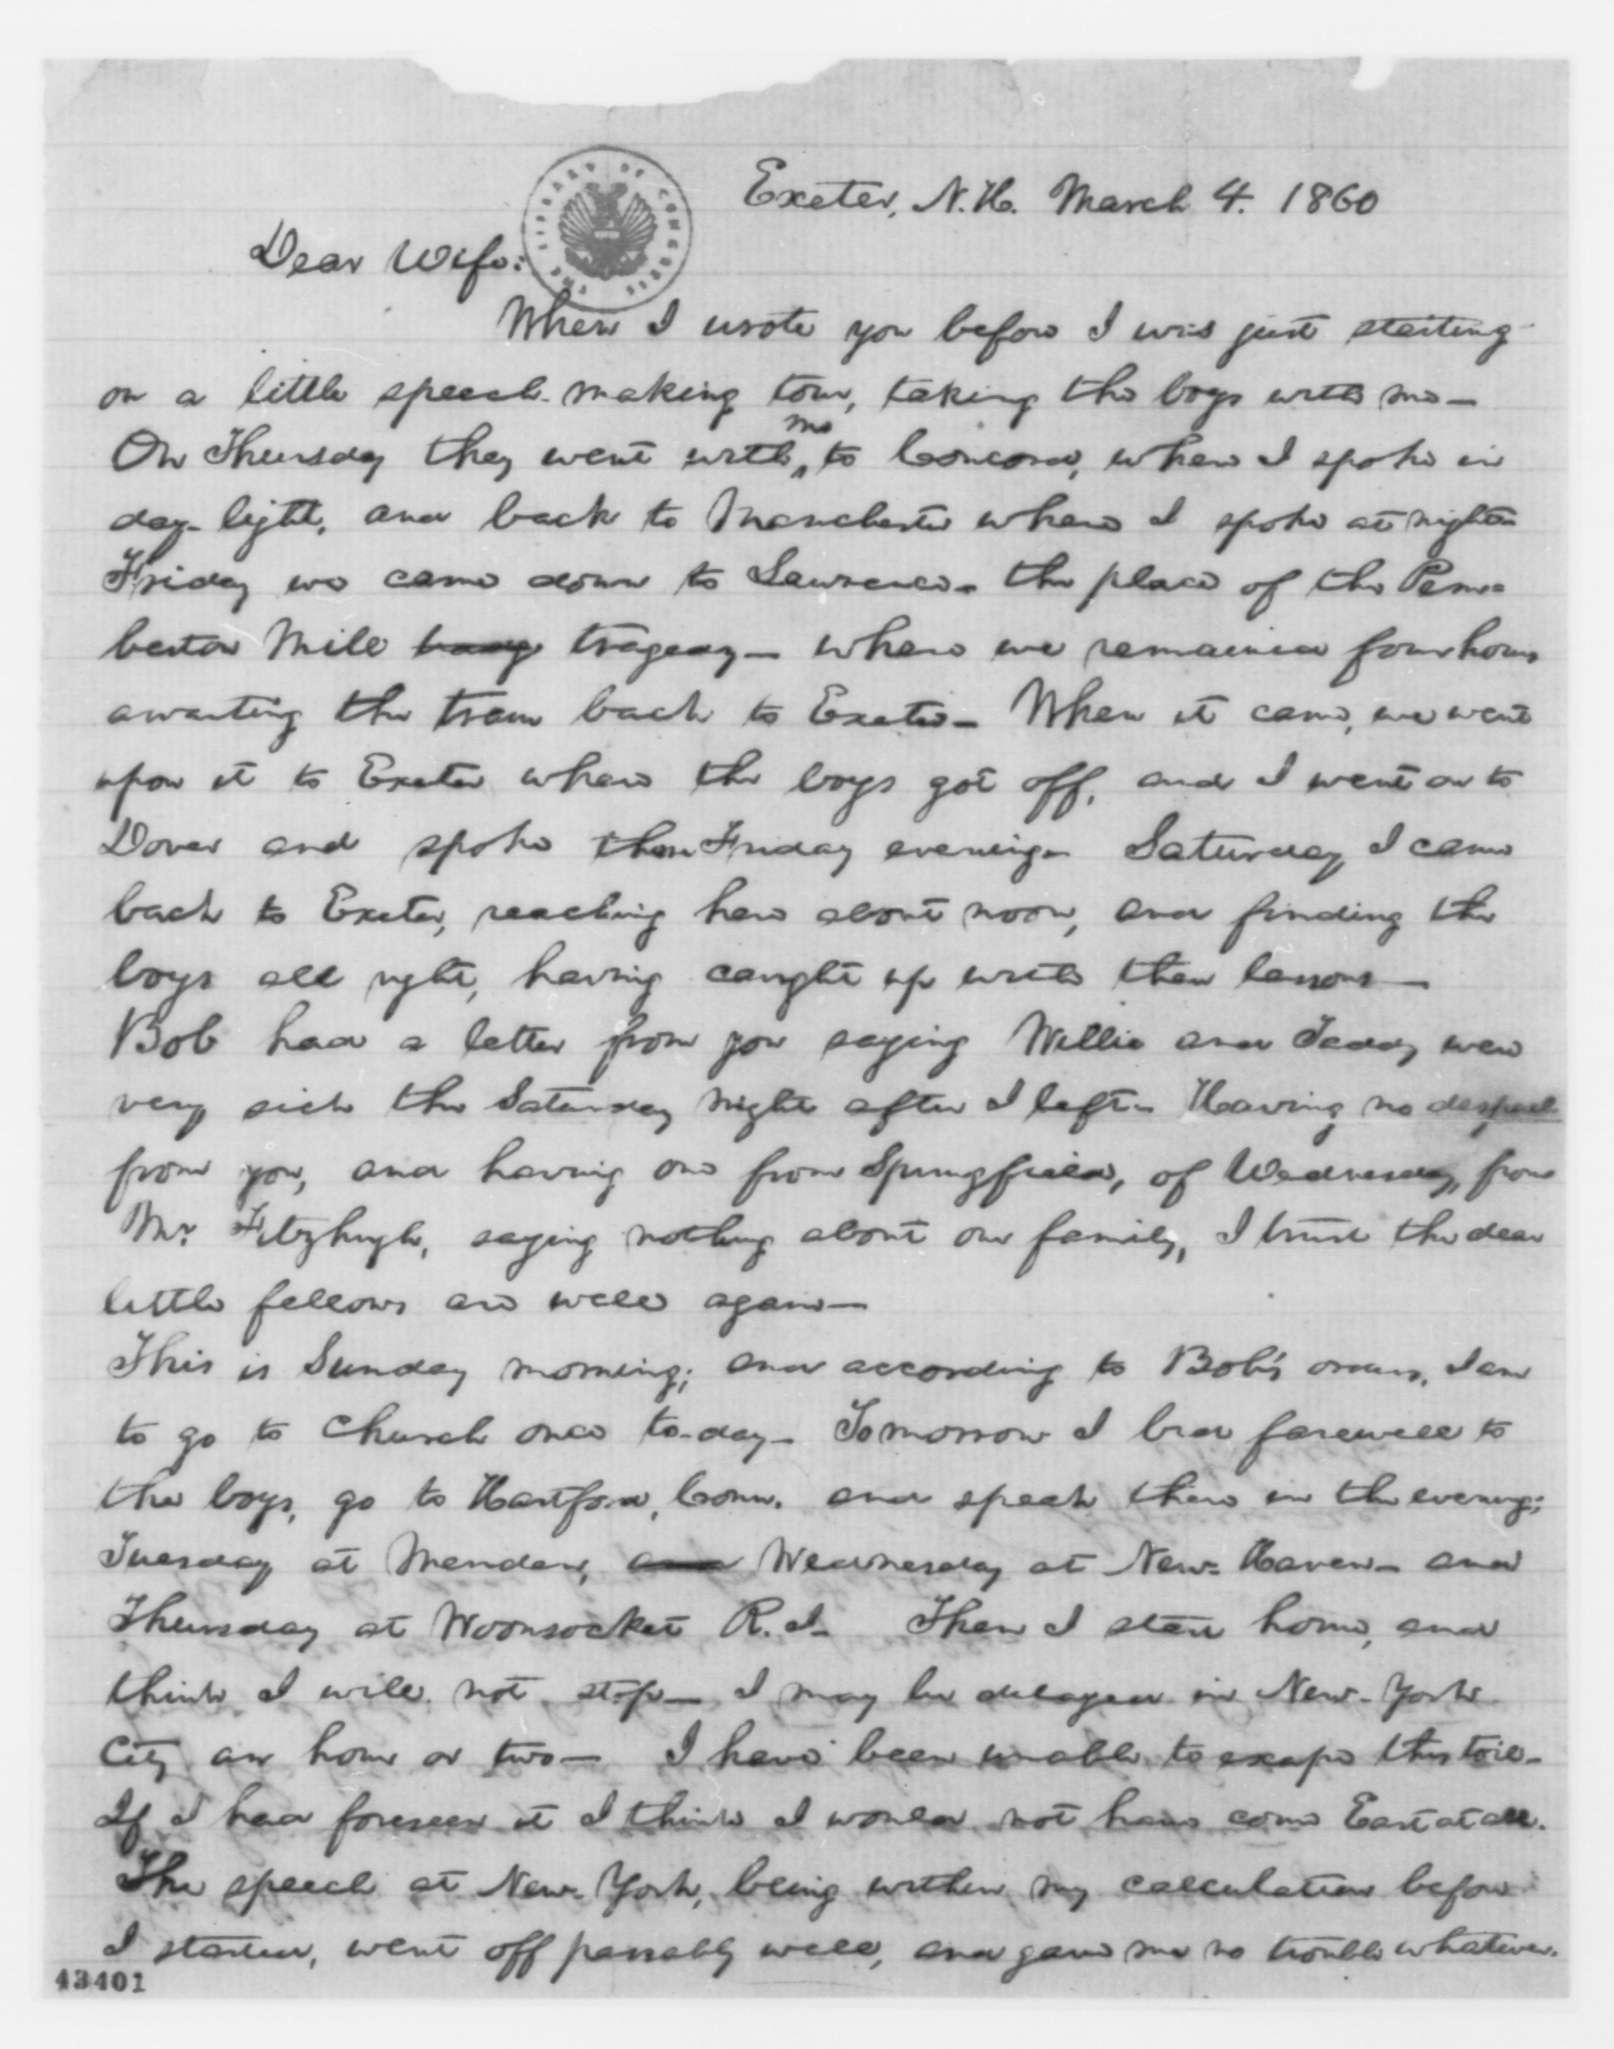 fileabraham lincoln letter exeter new hampshirejpg